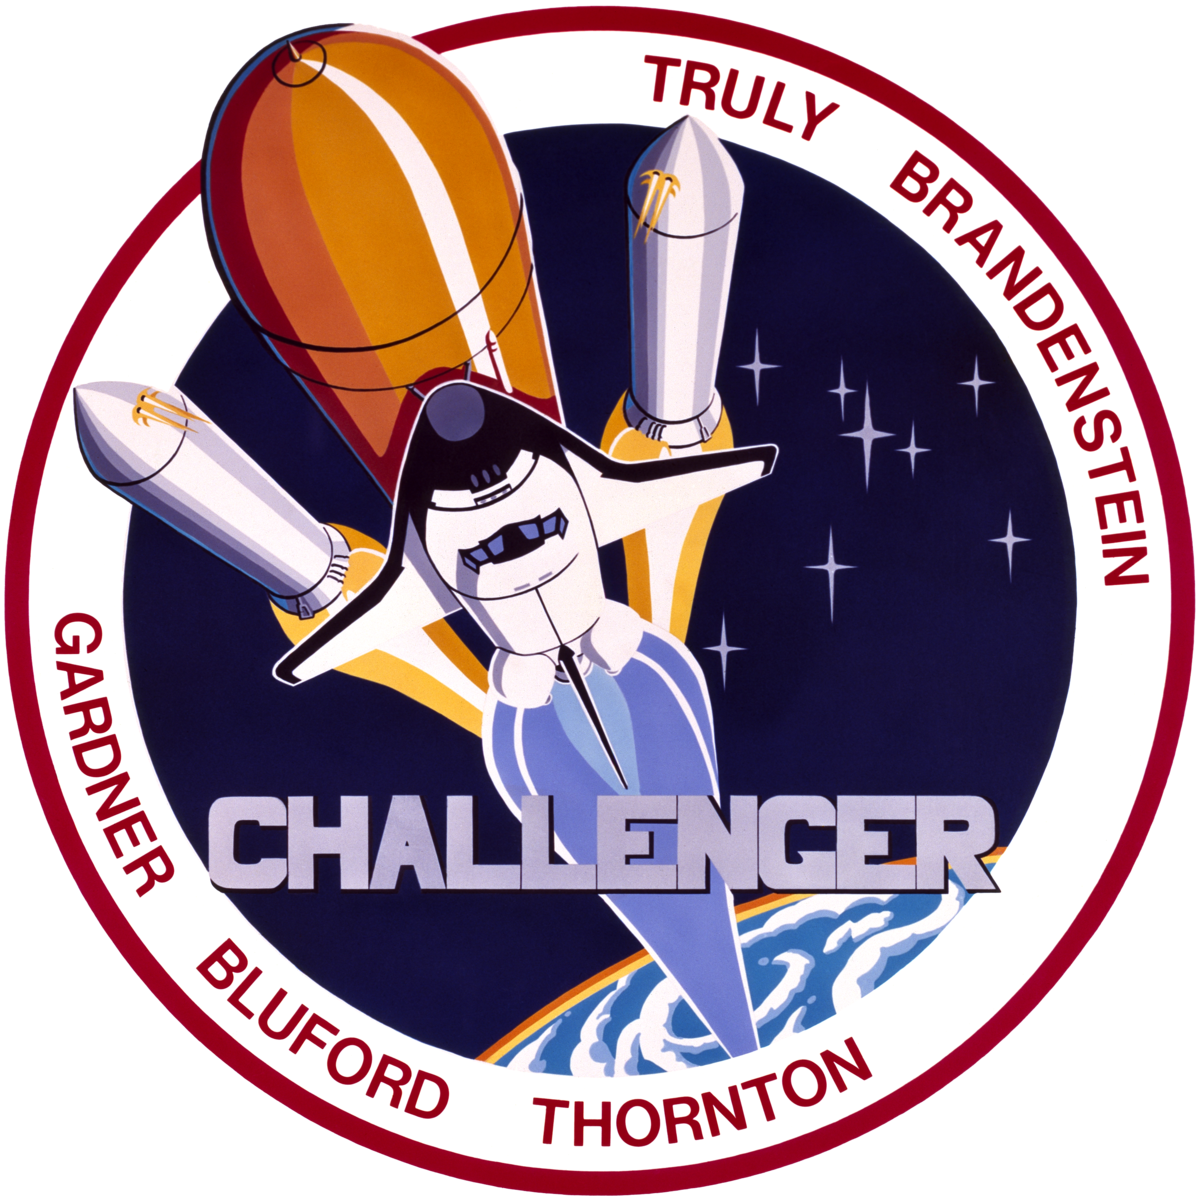 space shuttle challenger logo - photo #6